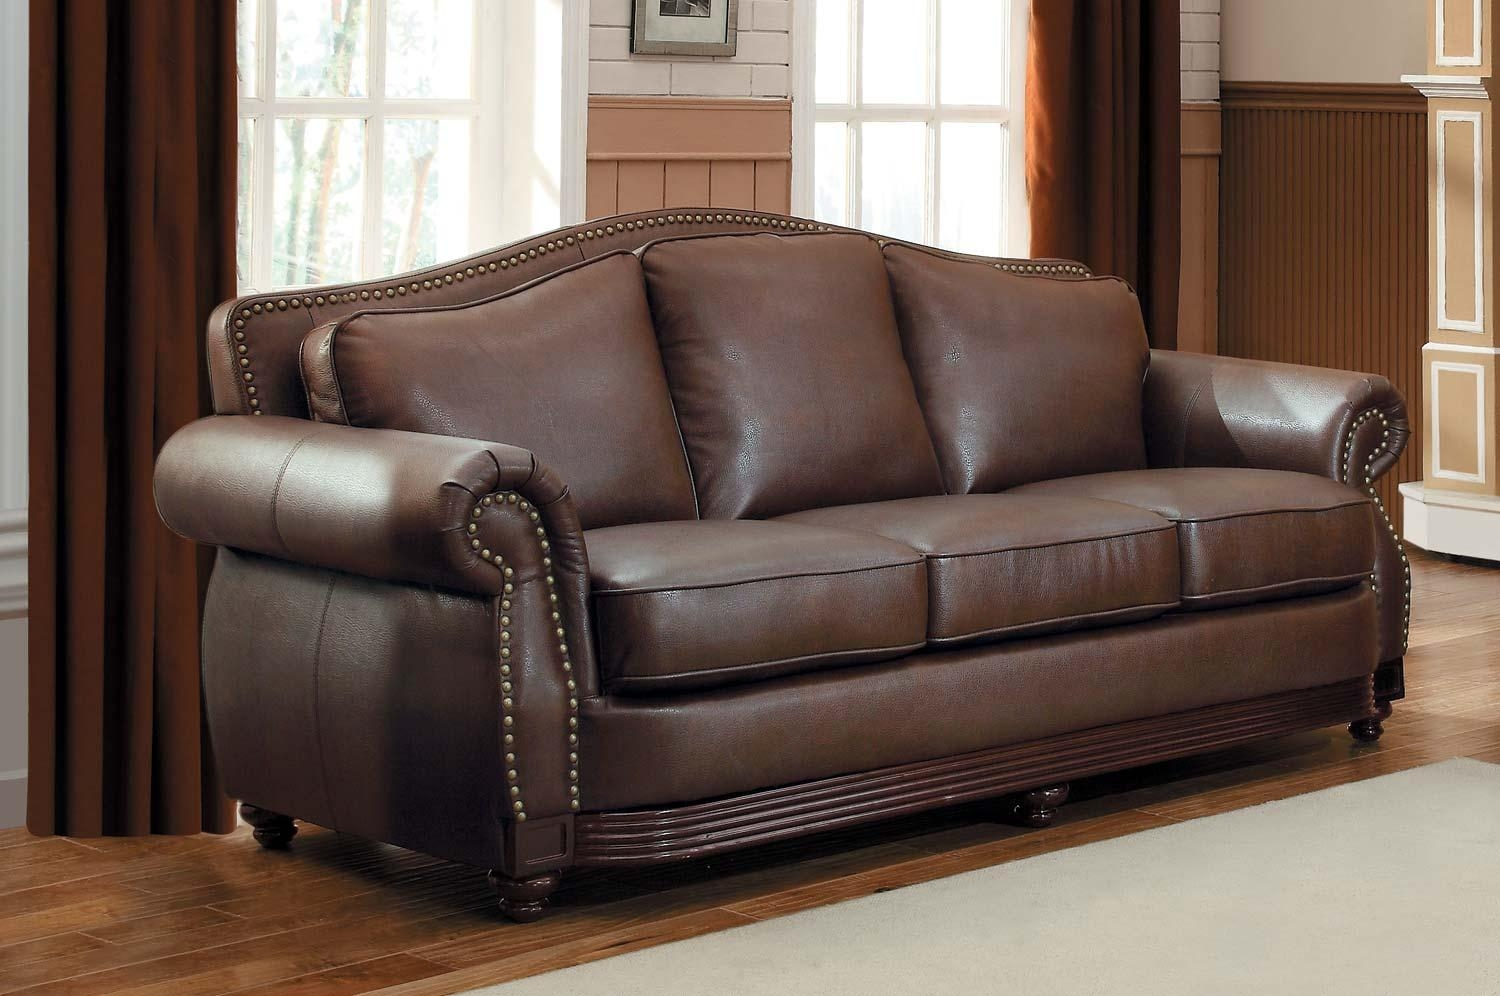 Sofas Center : Camelback Leather Sofa La Z Boy Tan Chenille For Camelback Leather Sofas (View 5 of 20)